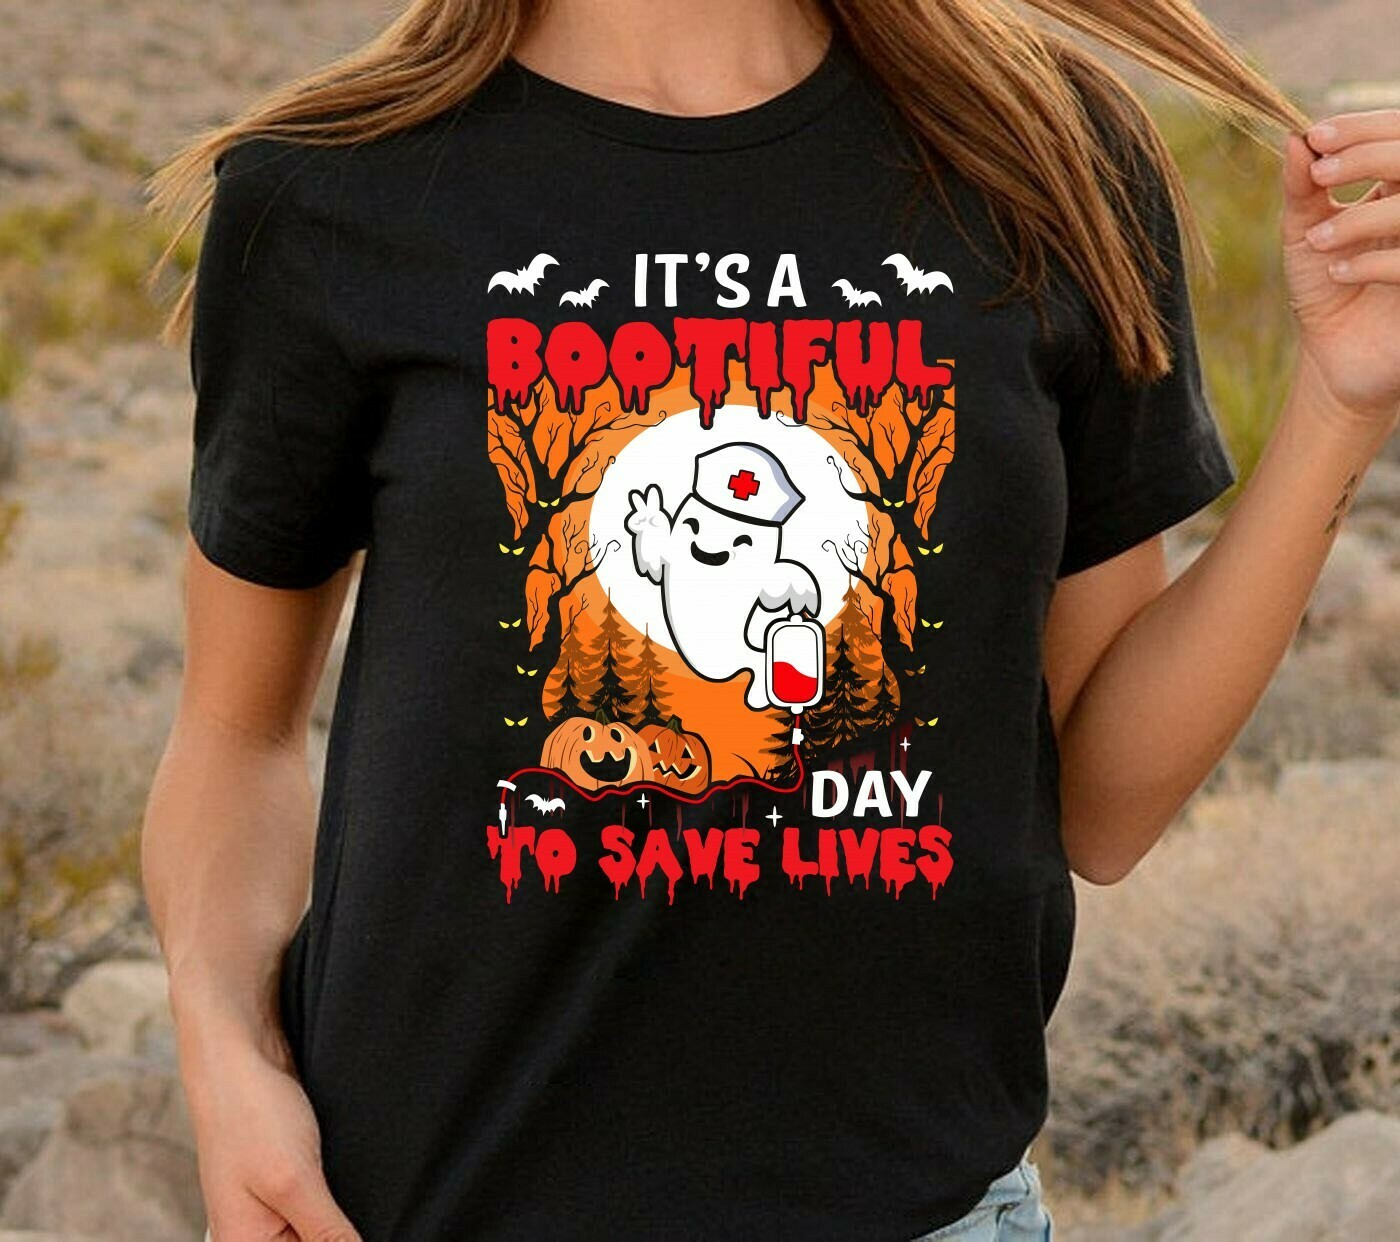 Boo Boo Crew Nurse It's A Bootifull Day To Save Lives gift for Love Nurselife Heartbeats RN Registered Halloween T-Shirt Long Sleeve Sweatshirt Hoodie Jolly Family Gifts